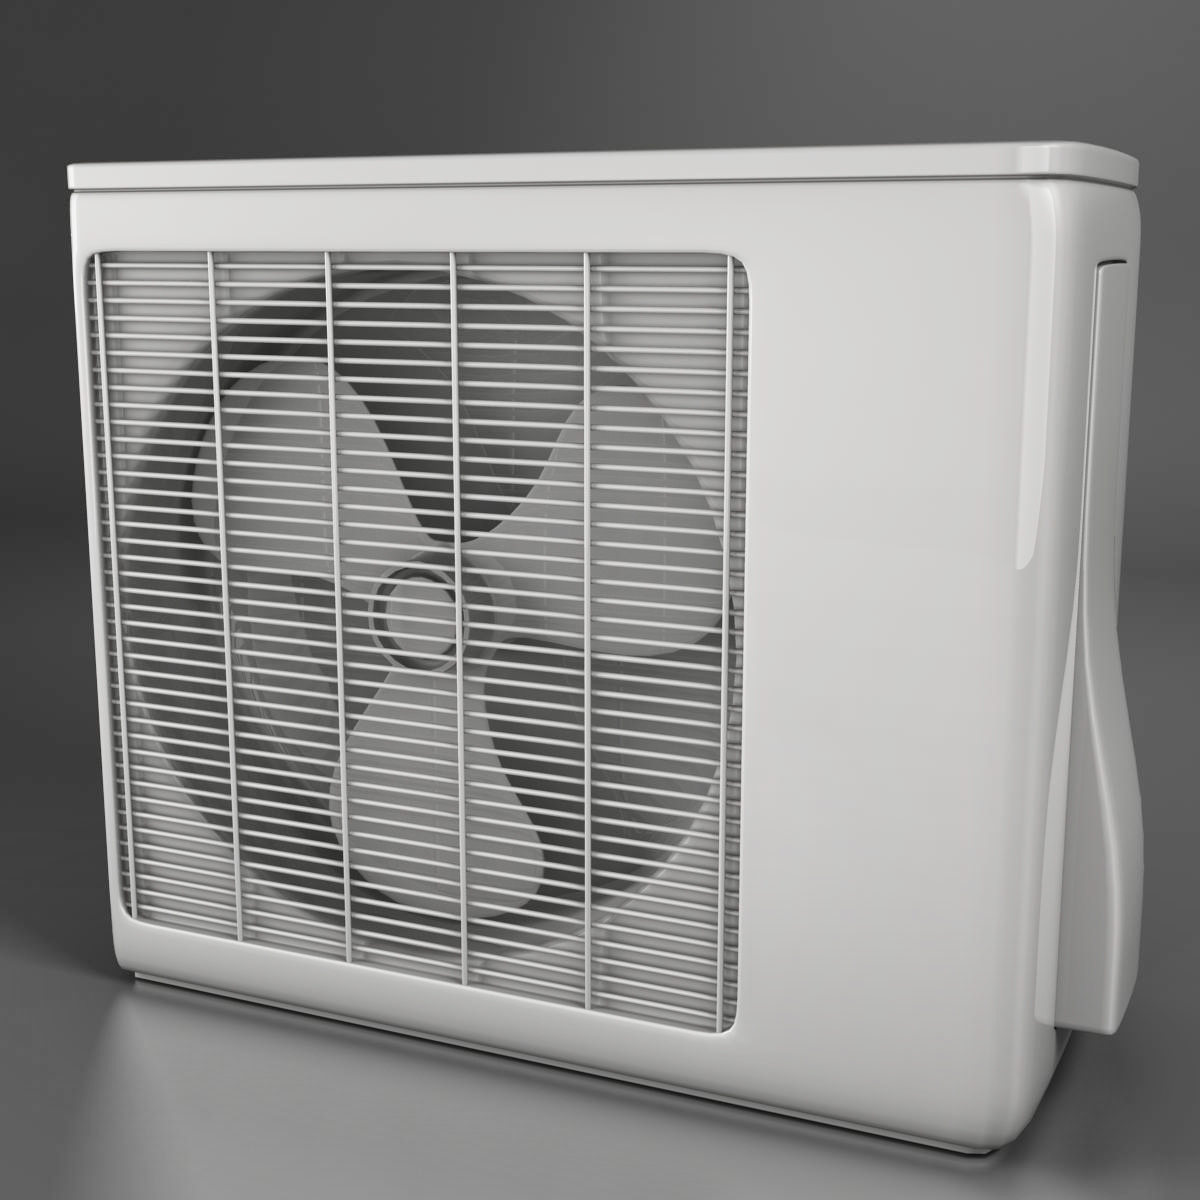 air conditioning 3d model 3ds max fbx c4d ma mb obj 159467